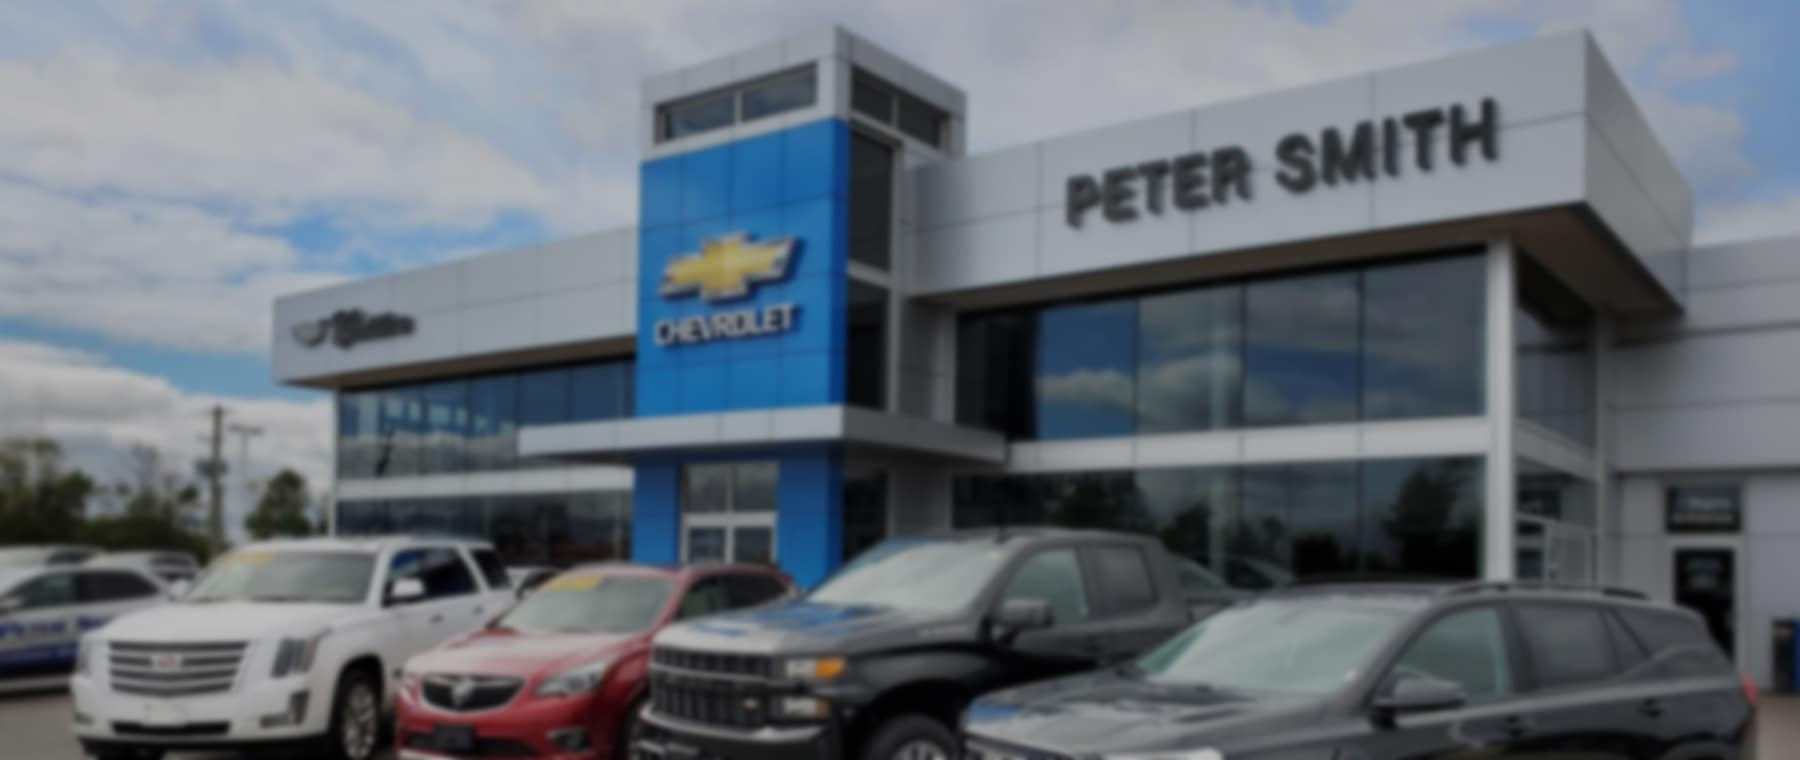 Peter Smith GM Belleville Chevy GMC Buick Cadillac